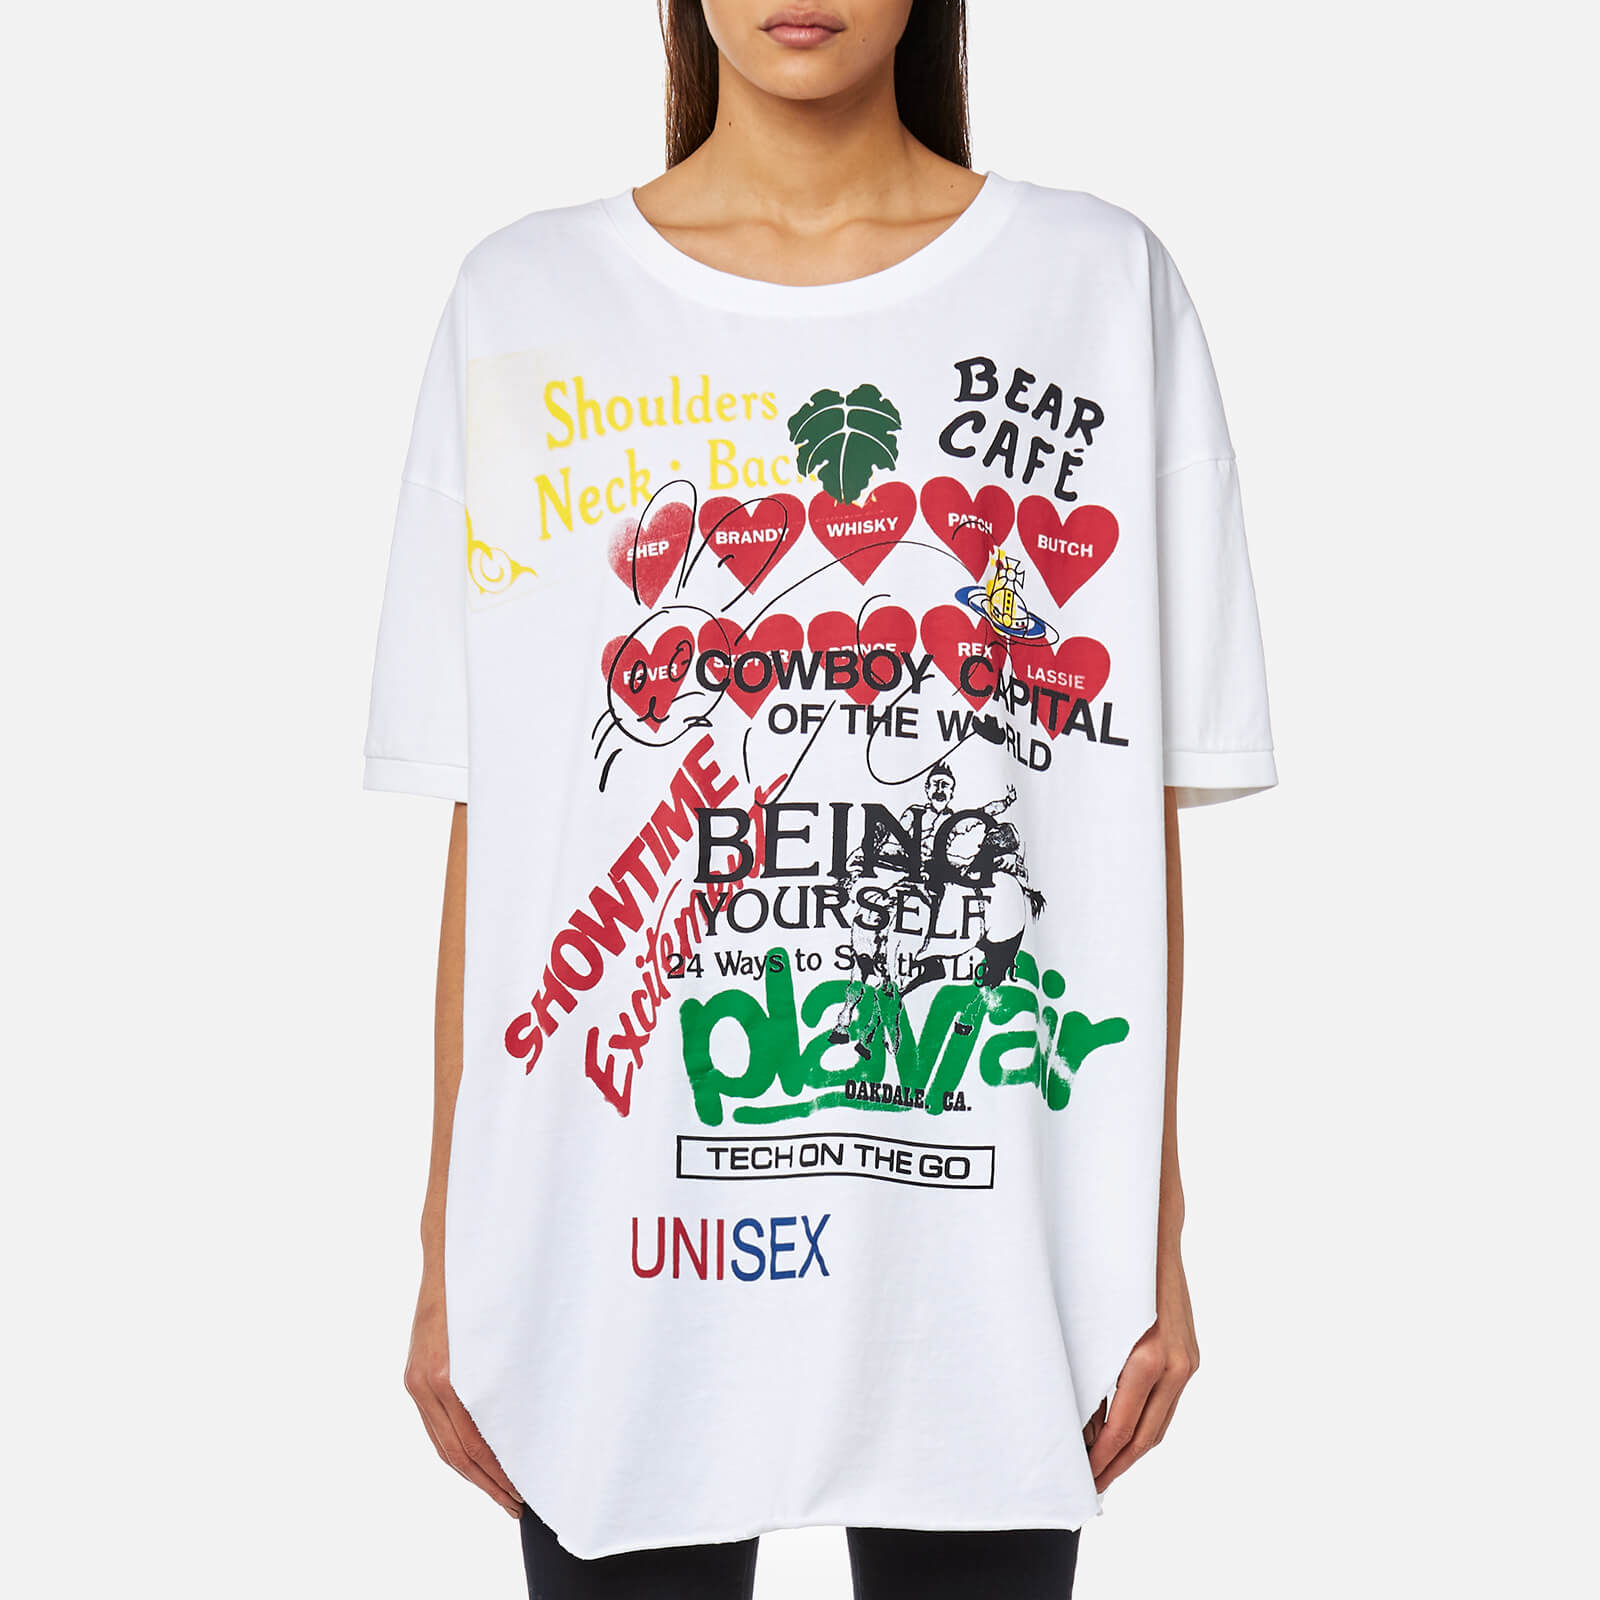 44d2f4285ad672 Vivienne Westwood Anglomania Women's Baggy T-Shirt - White - Free UK  Delivery over £50